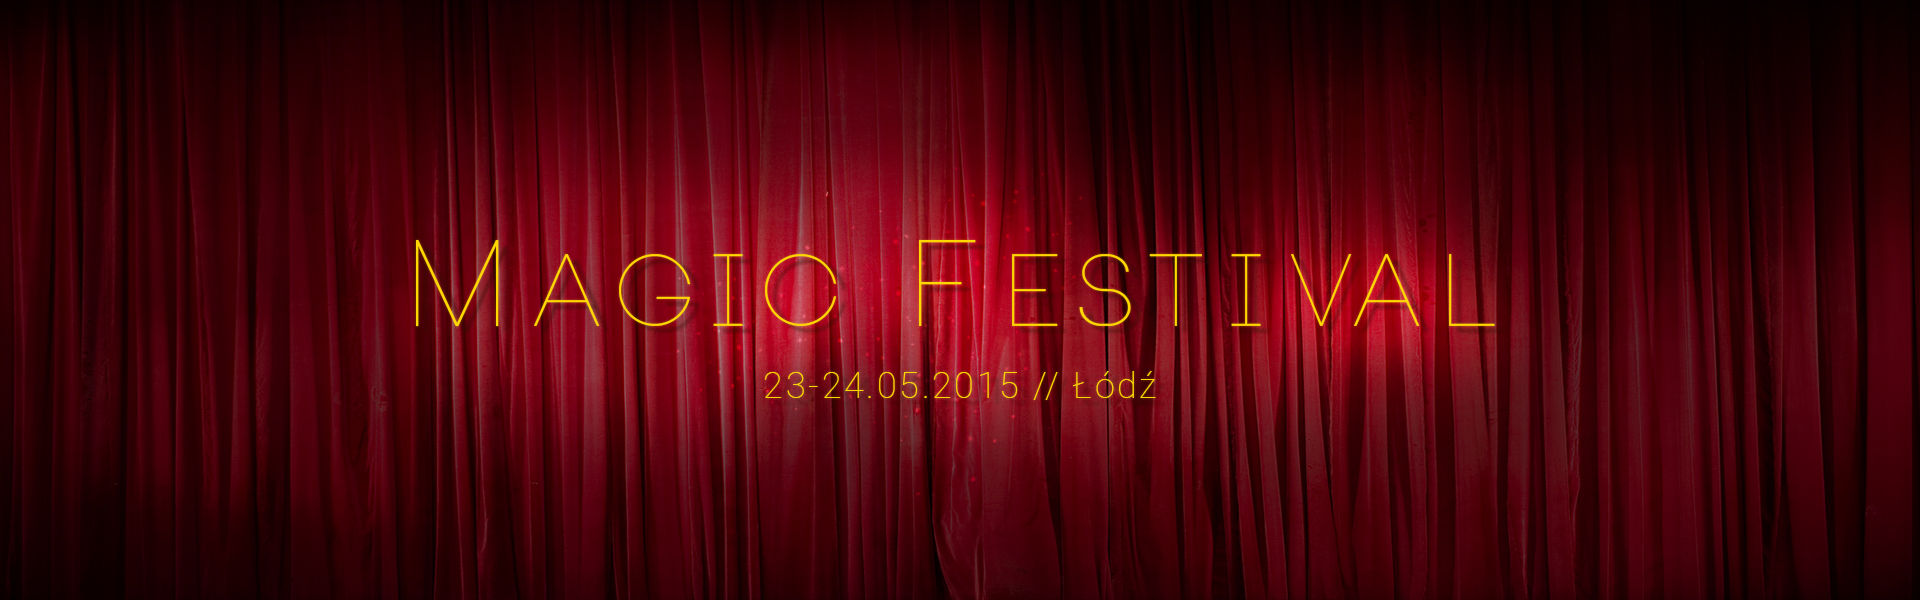 magic festival lodz